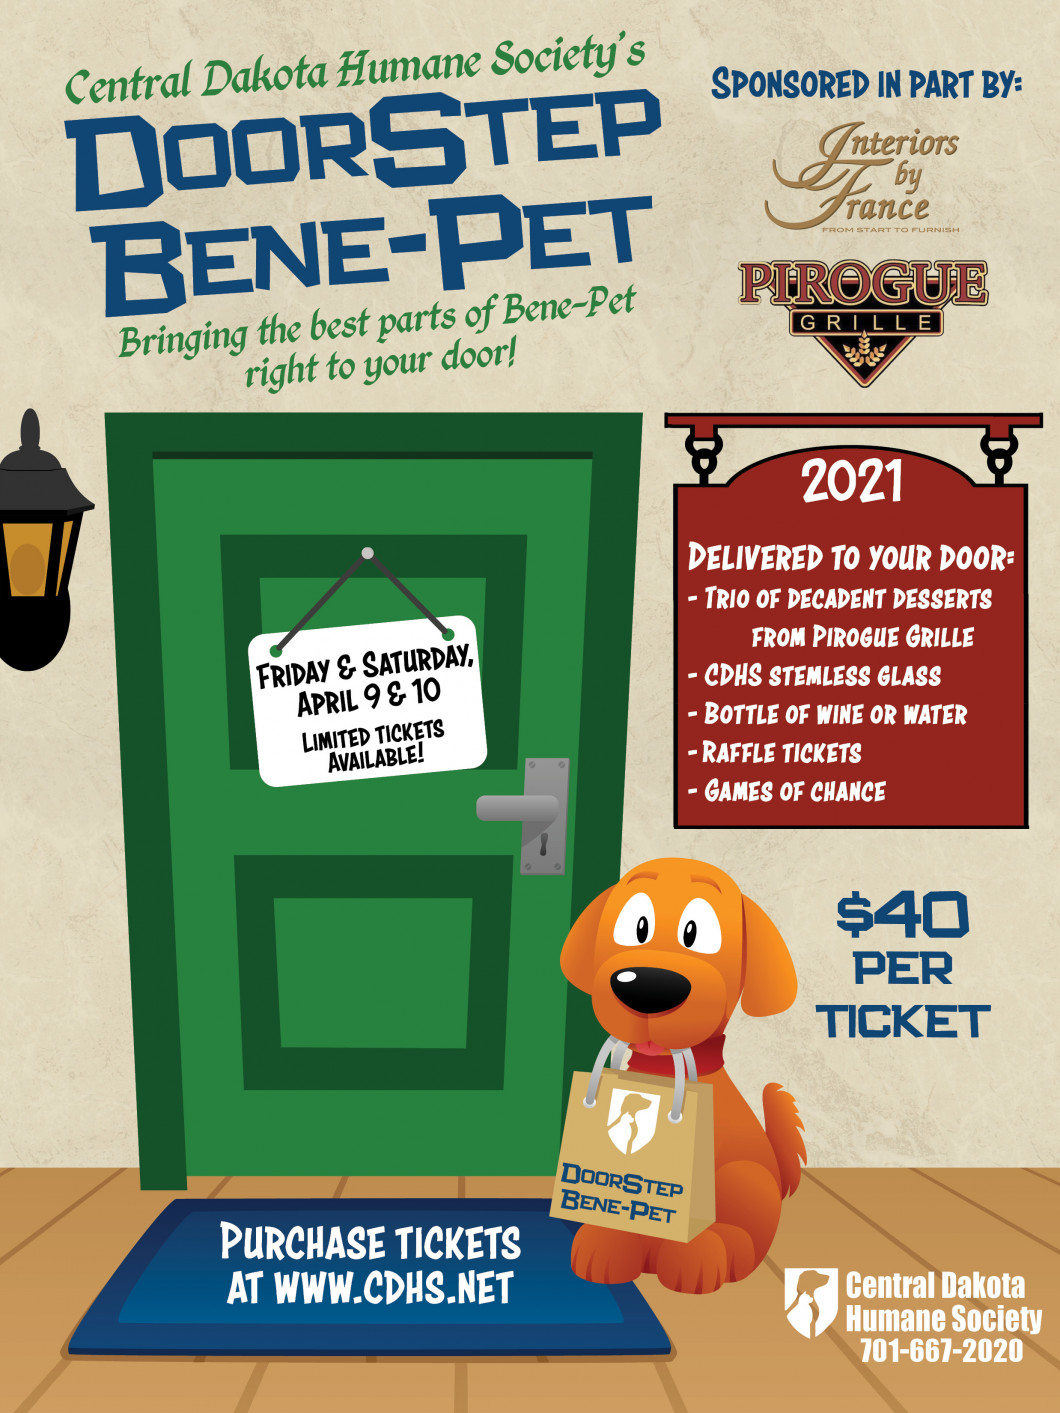 Join us for DoorStep Bene-Pet!